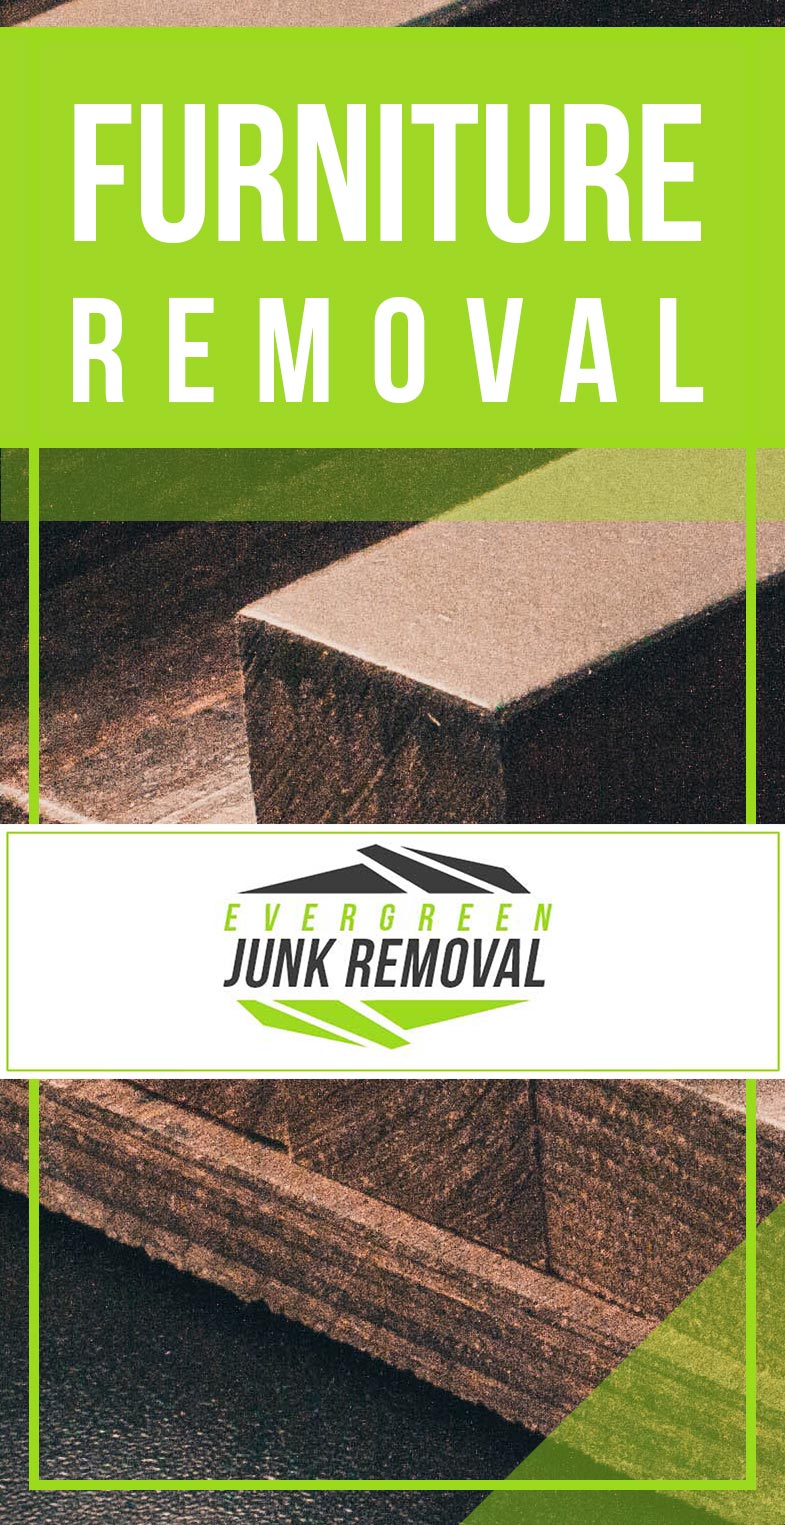 Irvine Furniture Removal